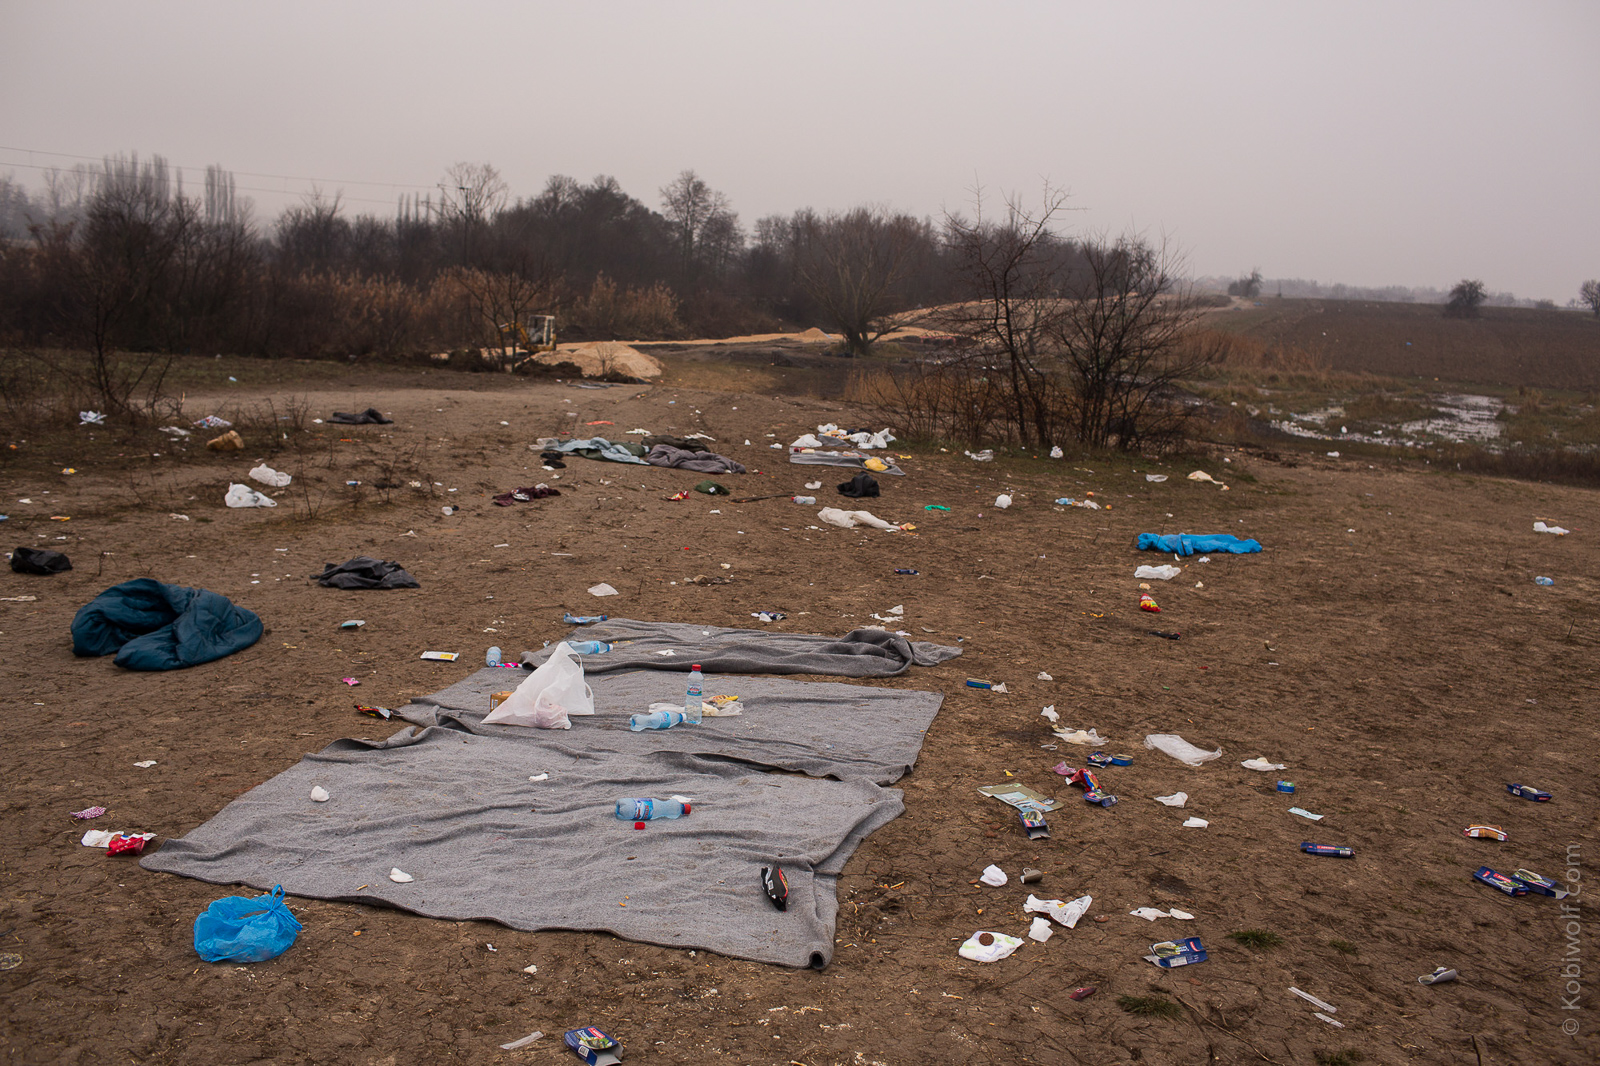 Blankets, sleeping bags, empty bottles and food wrappers left on the ground, after scores of refugees spent the night out in 0 Celsius temperatures